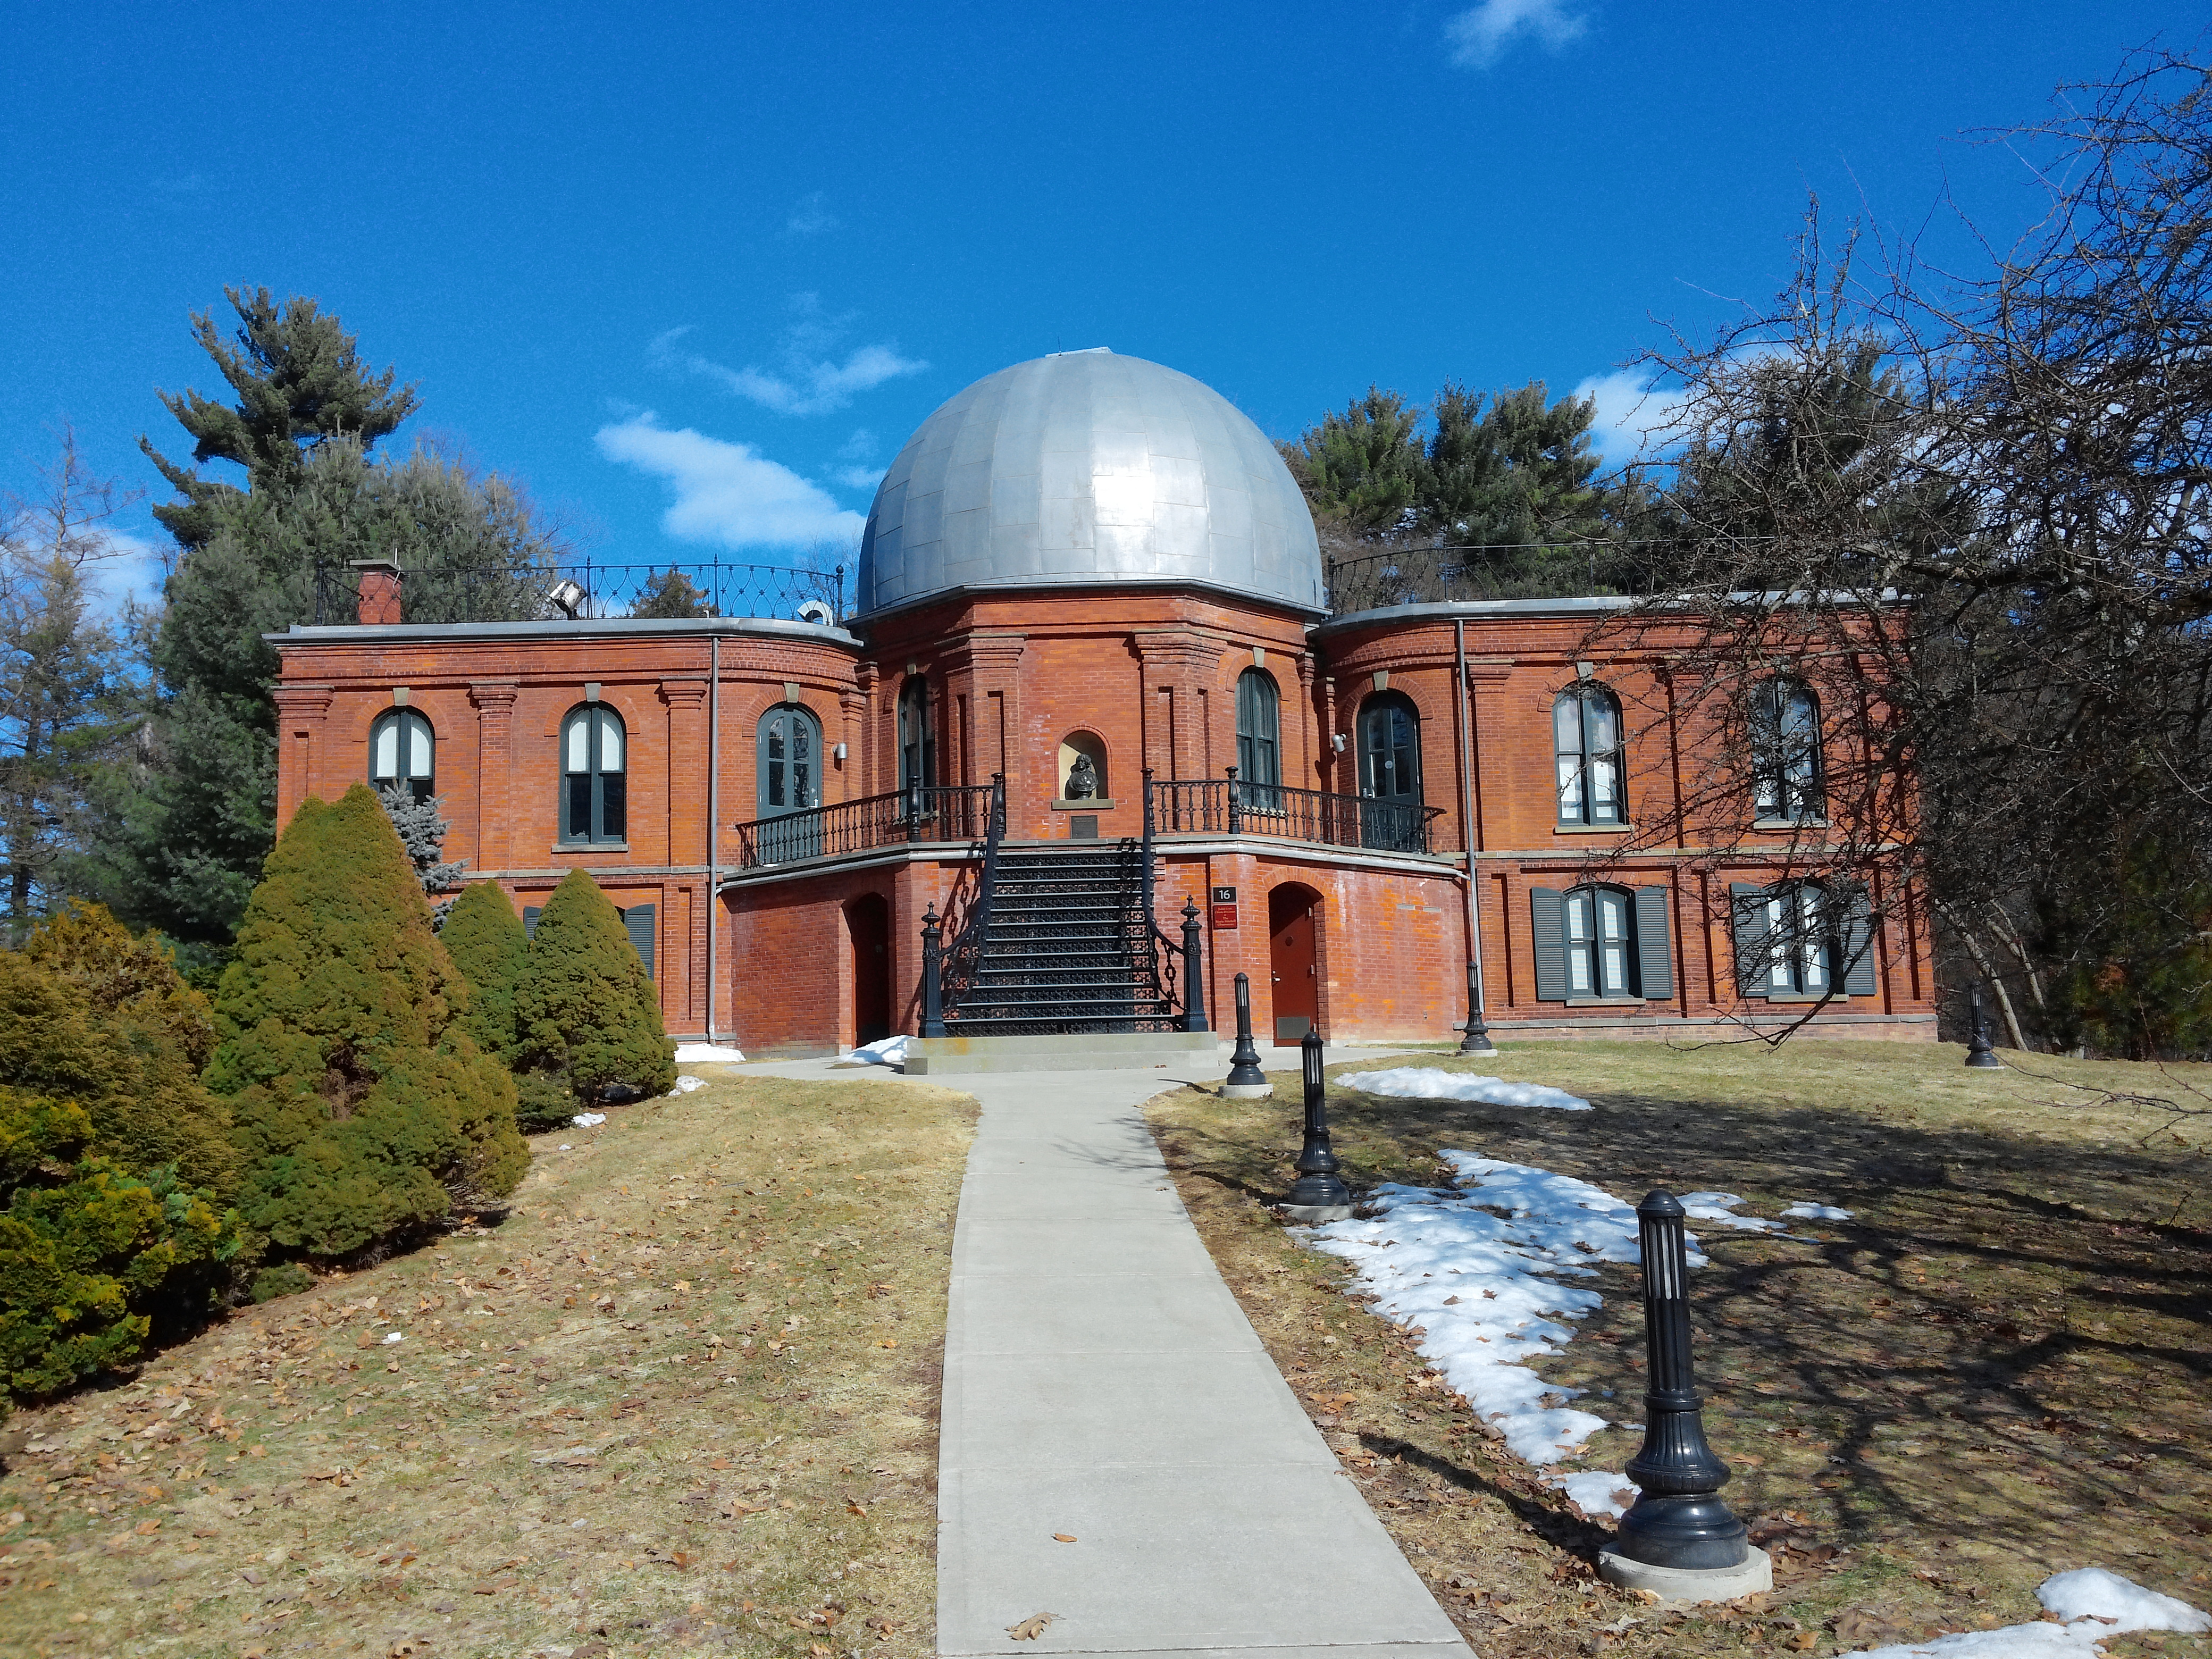 The Vassar College Observatory is one of two National Historic Landmarks on the college's campus, along with Main Building.